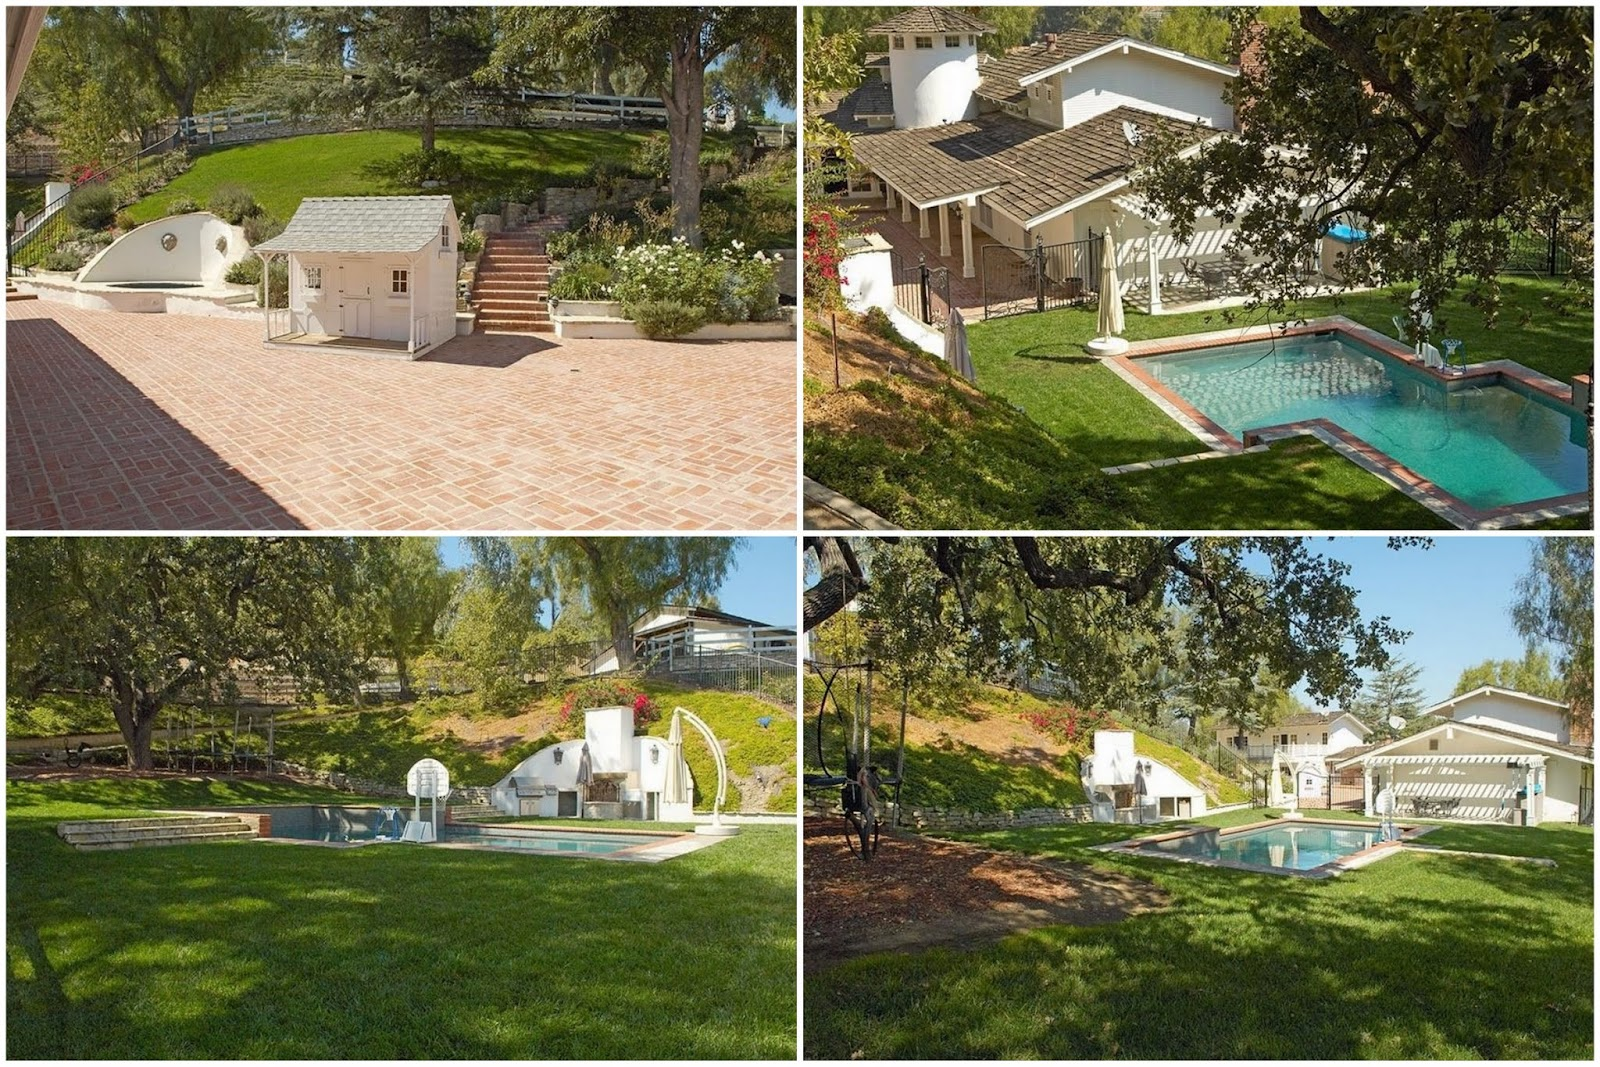 celeb r e miley cyrus buys 3rd sfv home in hidden hills san